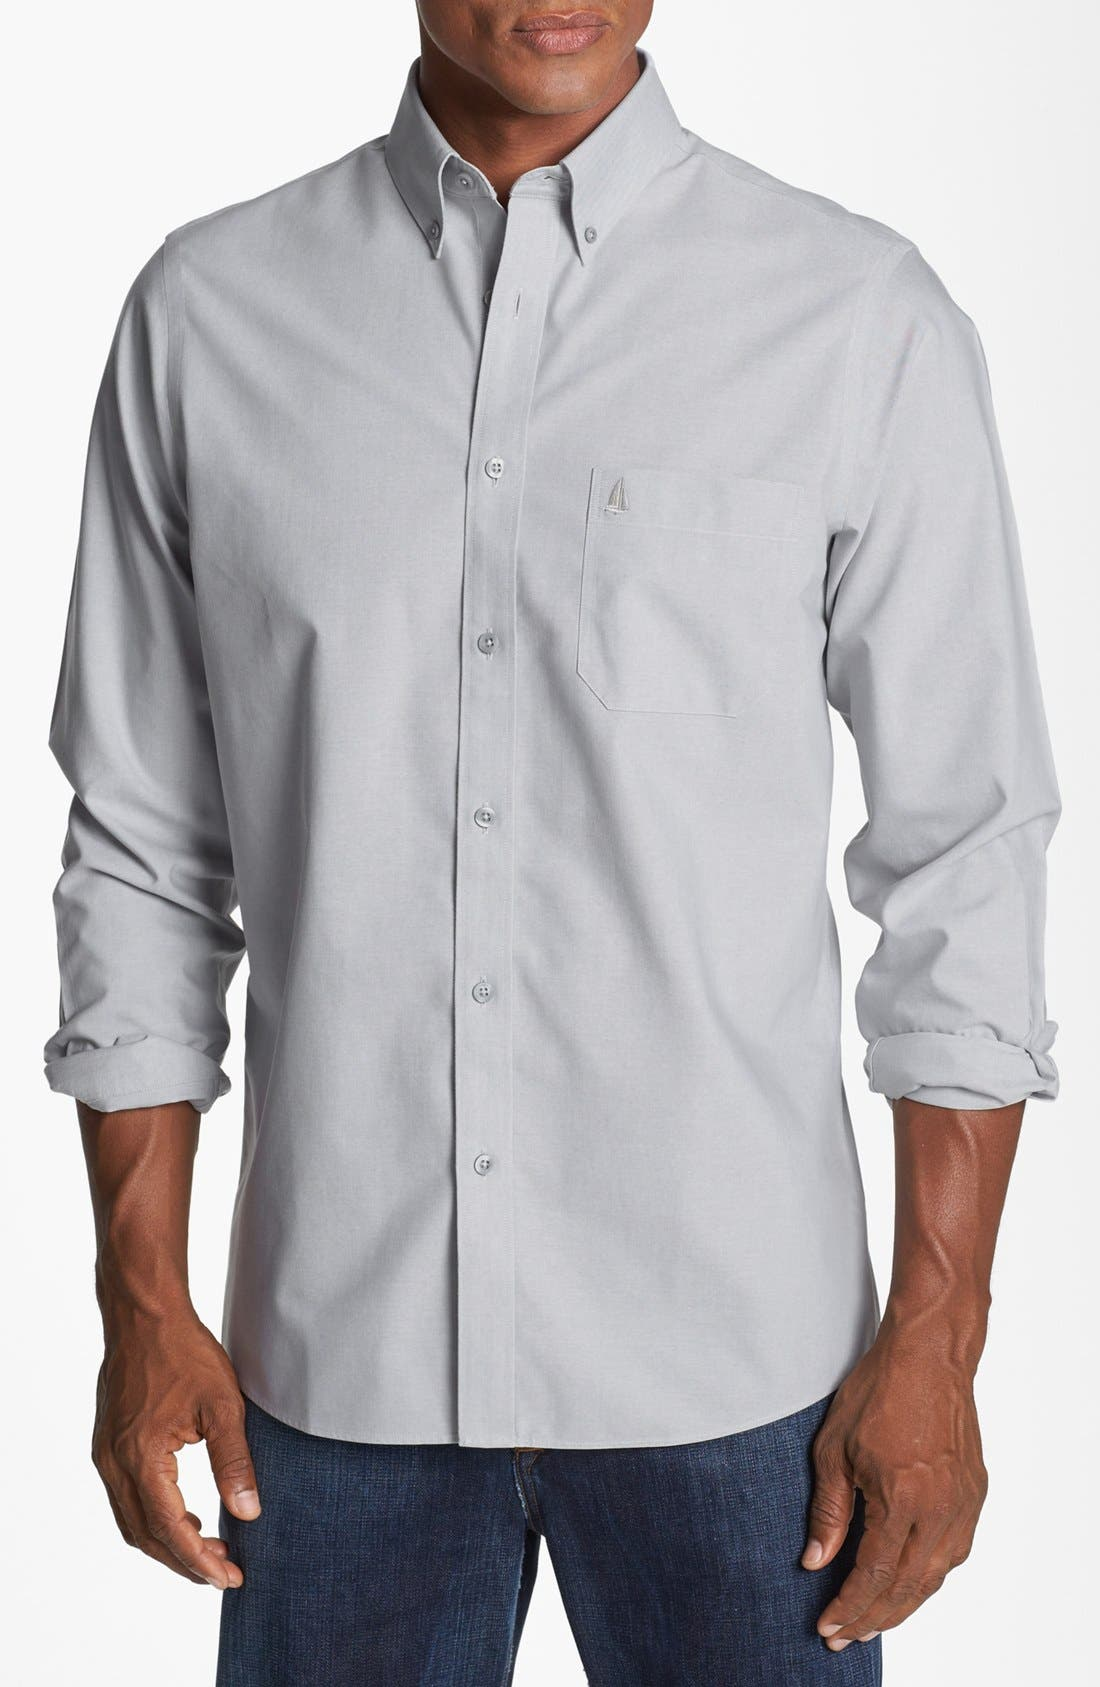 Alternate Image 1 Selected - Nordstrom Men's Shop Smartcare™ Regular Fit Oxford Sport Shirt (Tall)